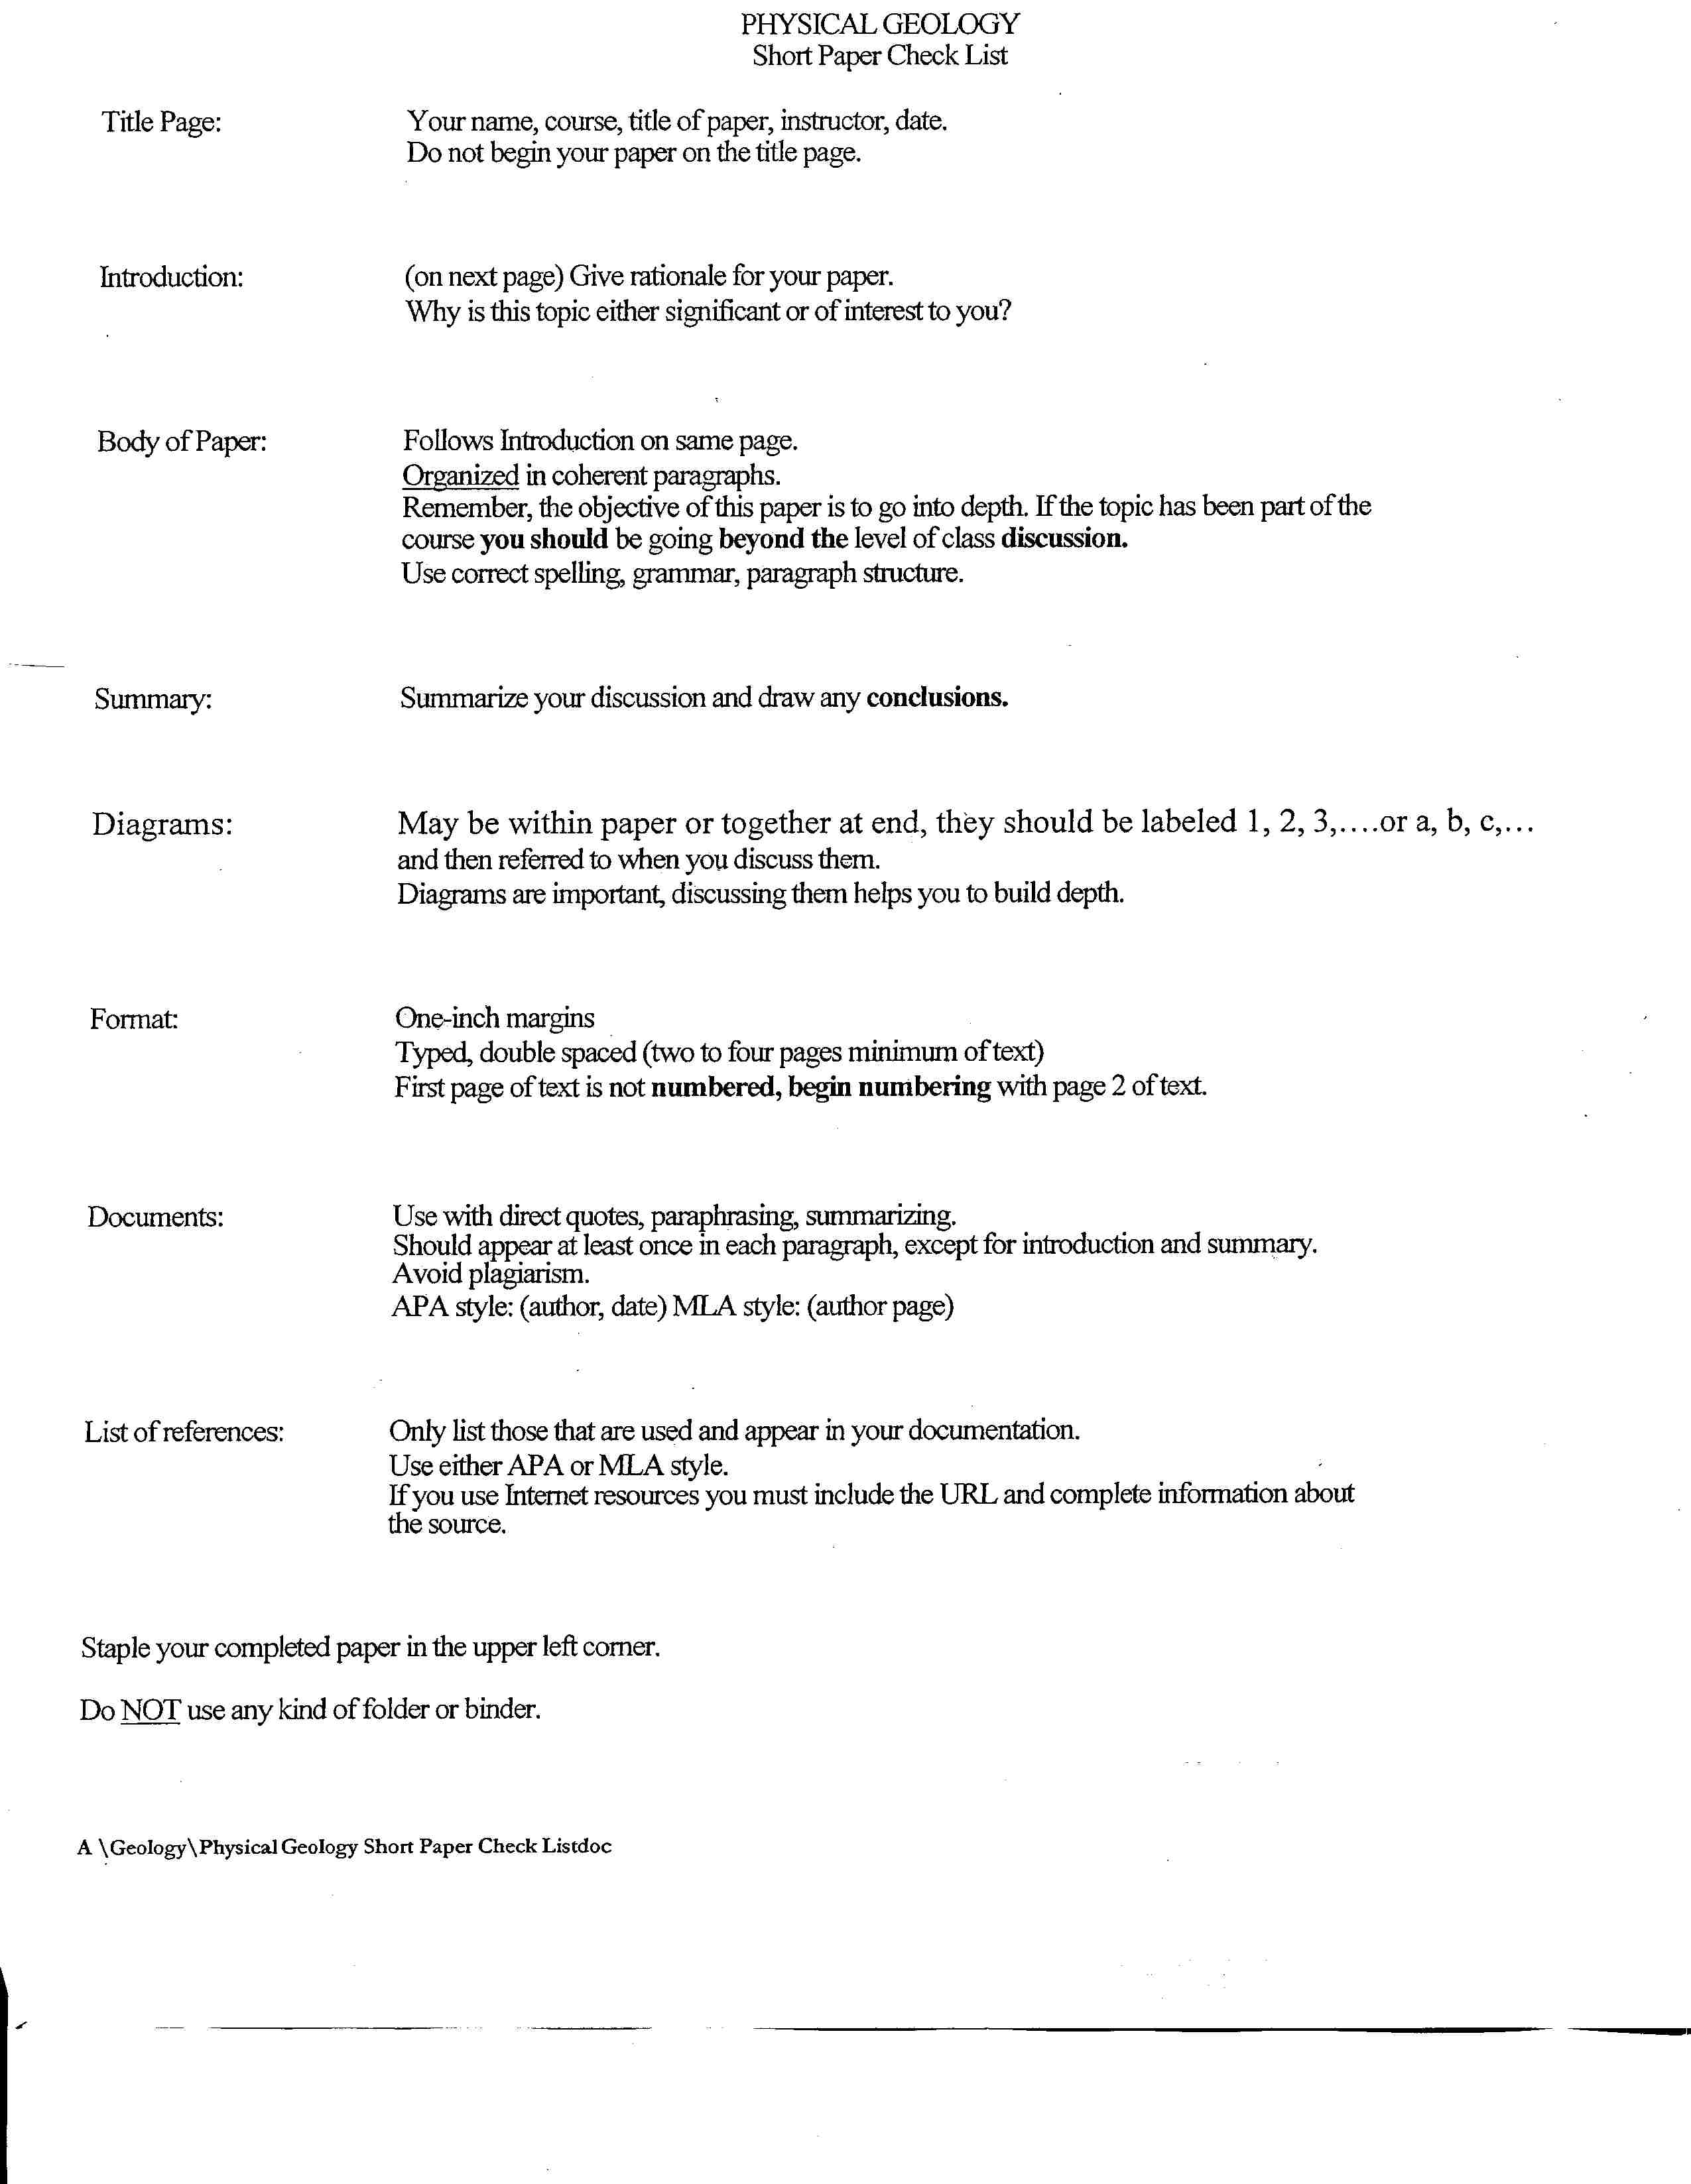 008 Research Paper Short Checklist Business Papers Exceptional Samples Examples Topics Full